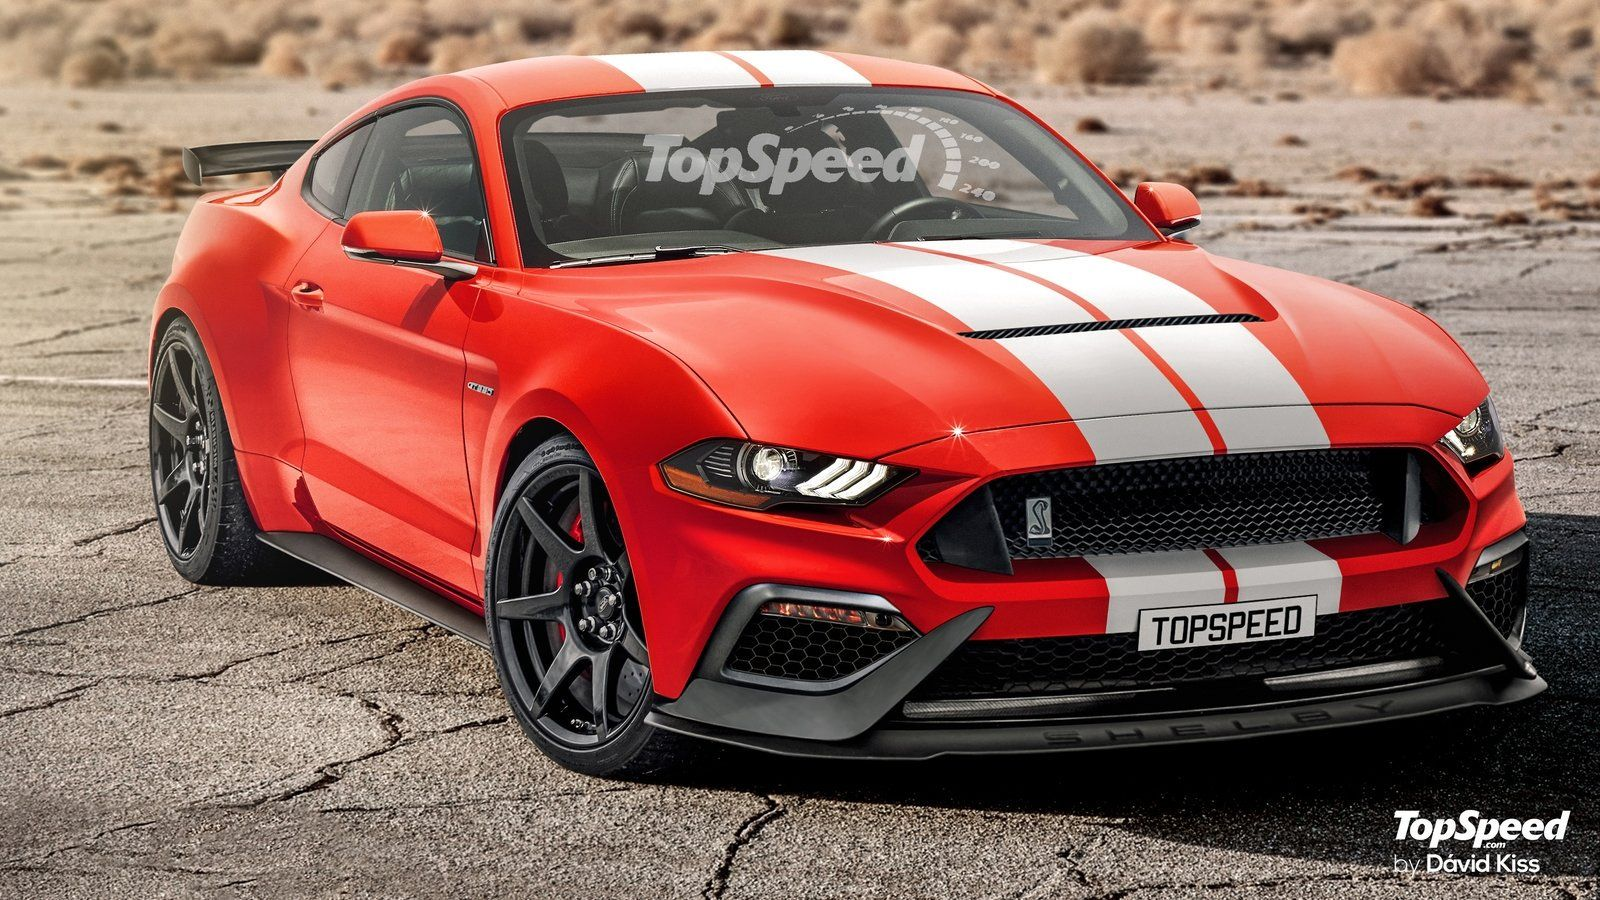 Ford Follows Toyota S Lead By Auctioning Off The 1st 2020 Mustang Shelby Gt500 For Charity Pictures Ph Ford Mustang Shelby Gt500 Mustang Gt 350 Mustang Shelby